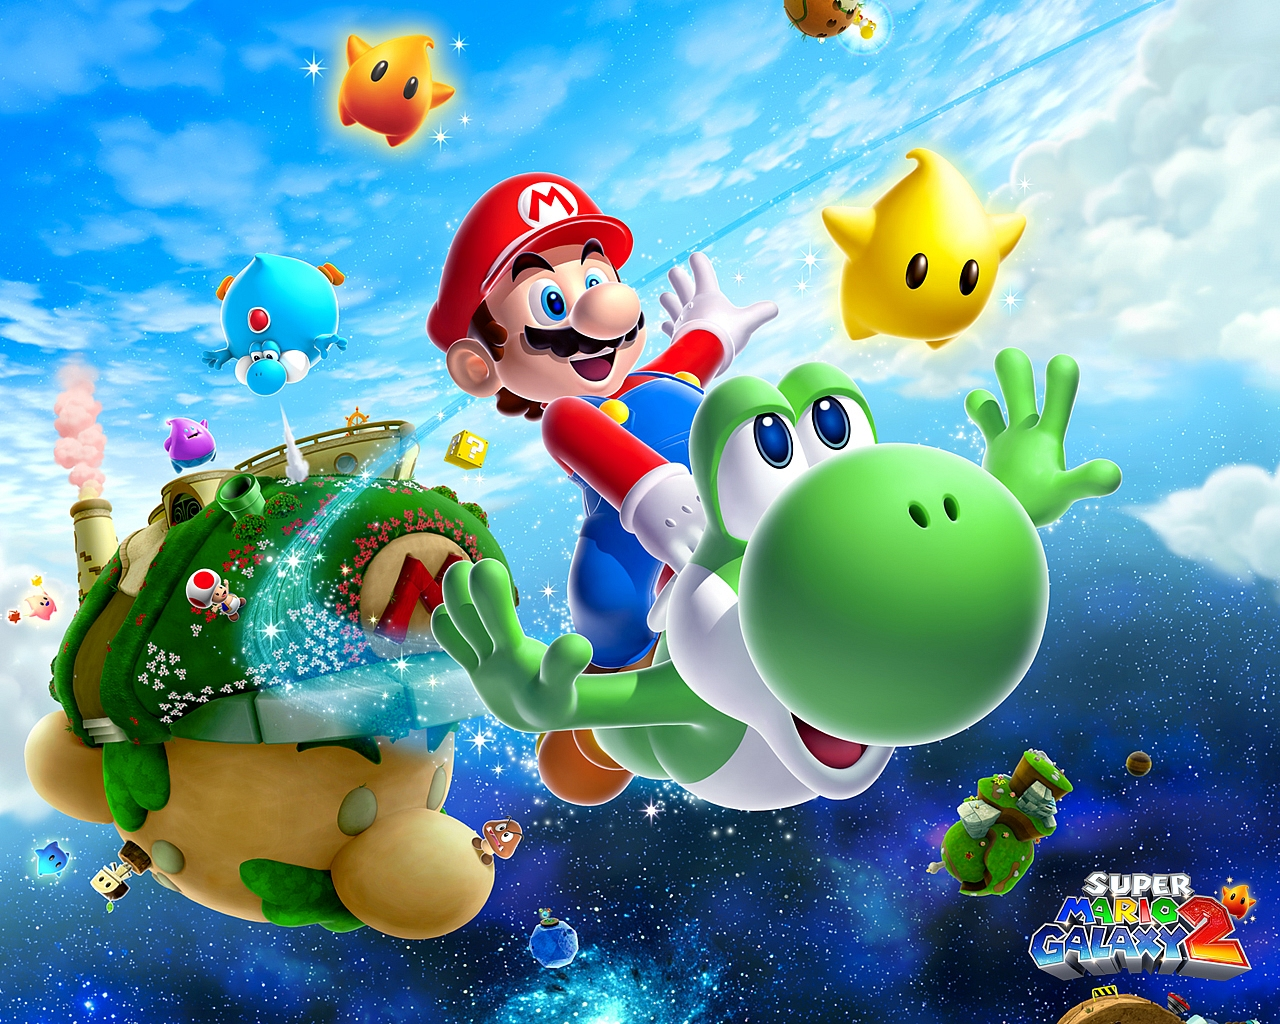 http://www.mariomayhem.com/downloads/wallpapers/35/Super_Mario_Galaxy_2_Wallpaper_1280x1024.jpg